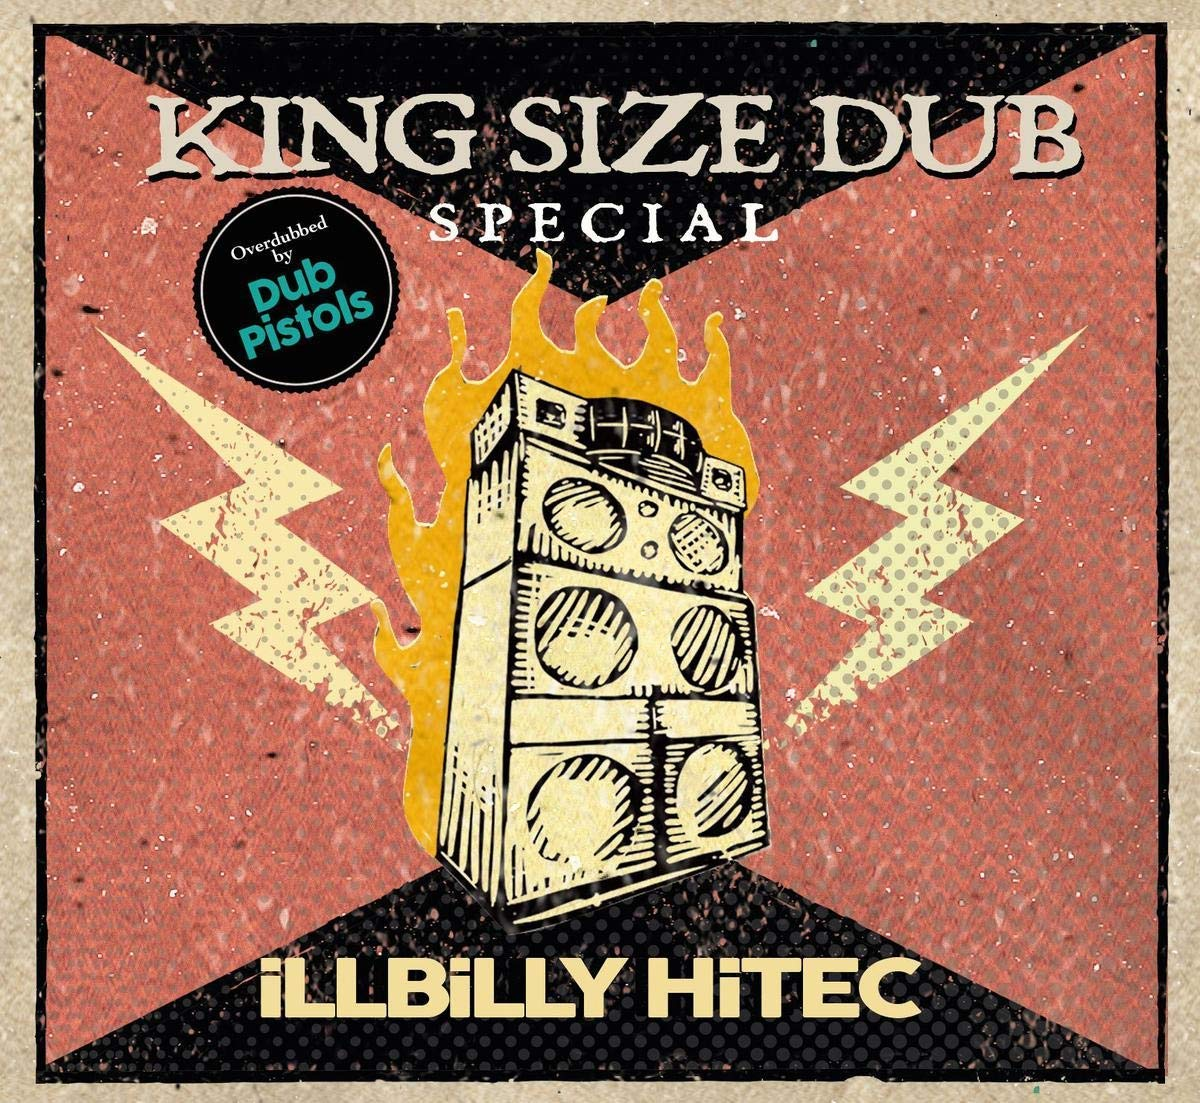 KING SIZE DUB – special - iLLBiLLY HiTEC (overdubbed by DUB PISTOLS)